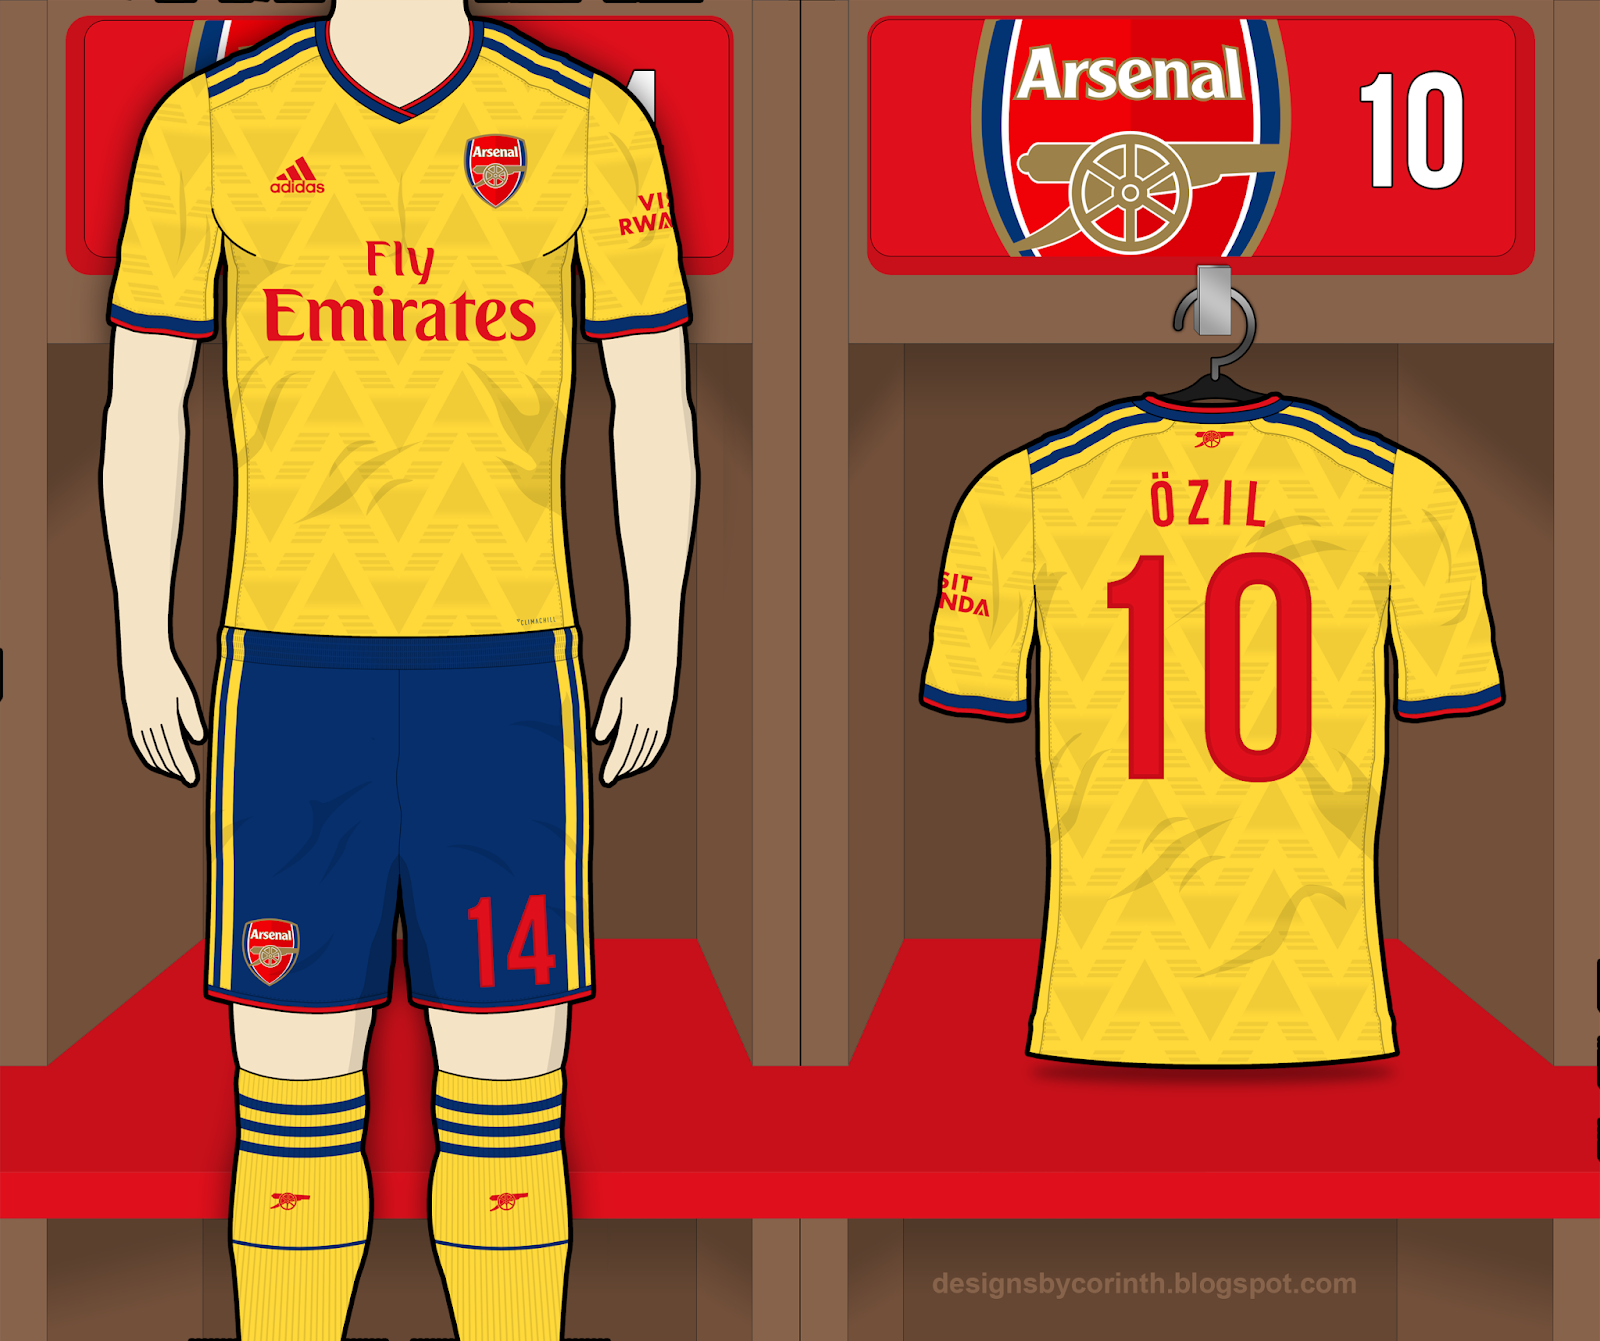 eb1acd469ef Arsenal 2019 20 Home and Away Kit Predictions (according to leaks)